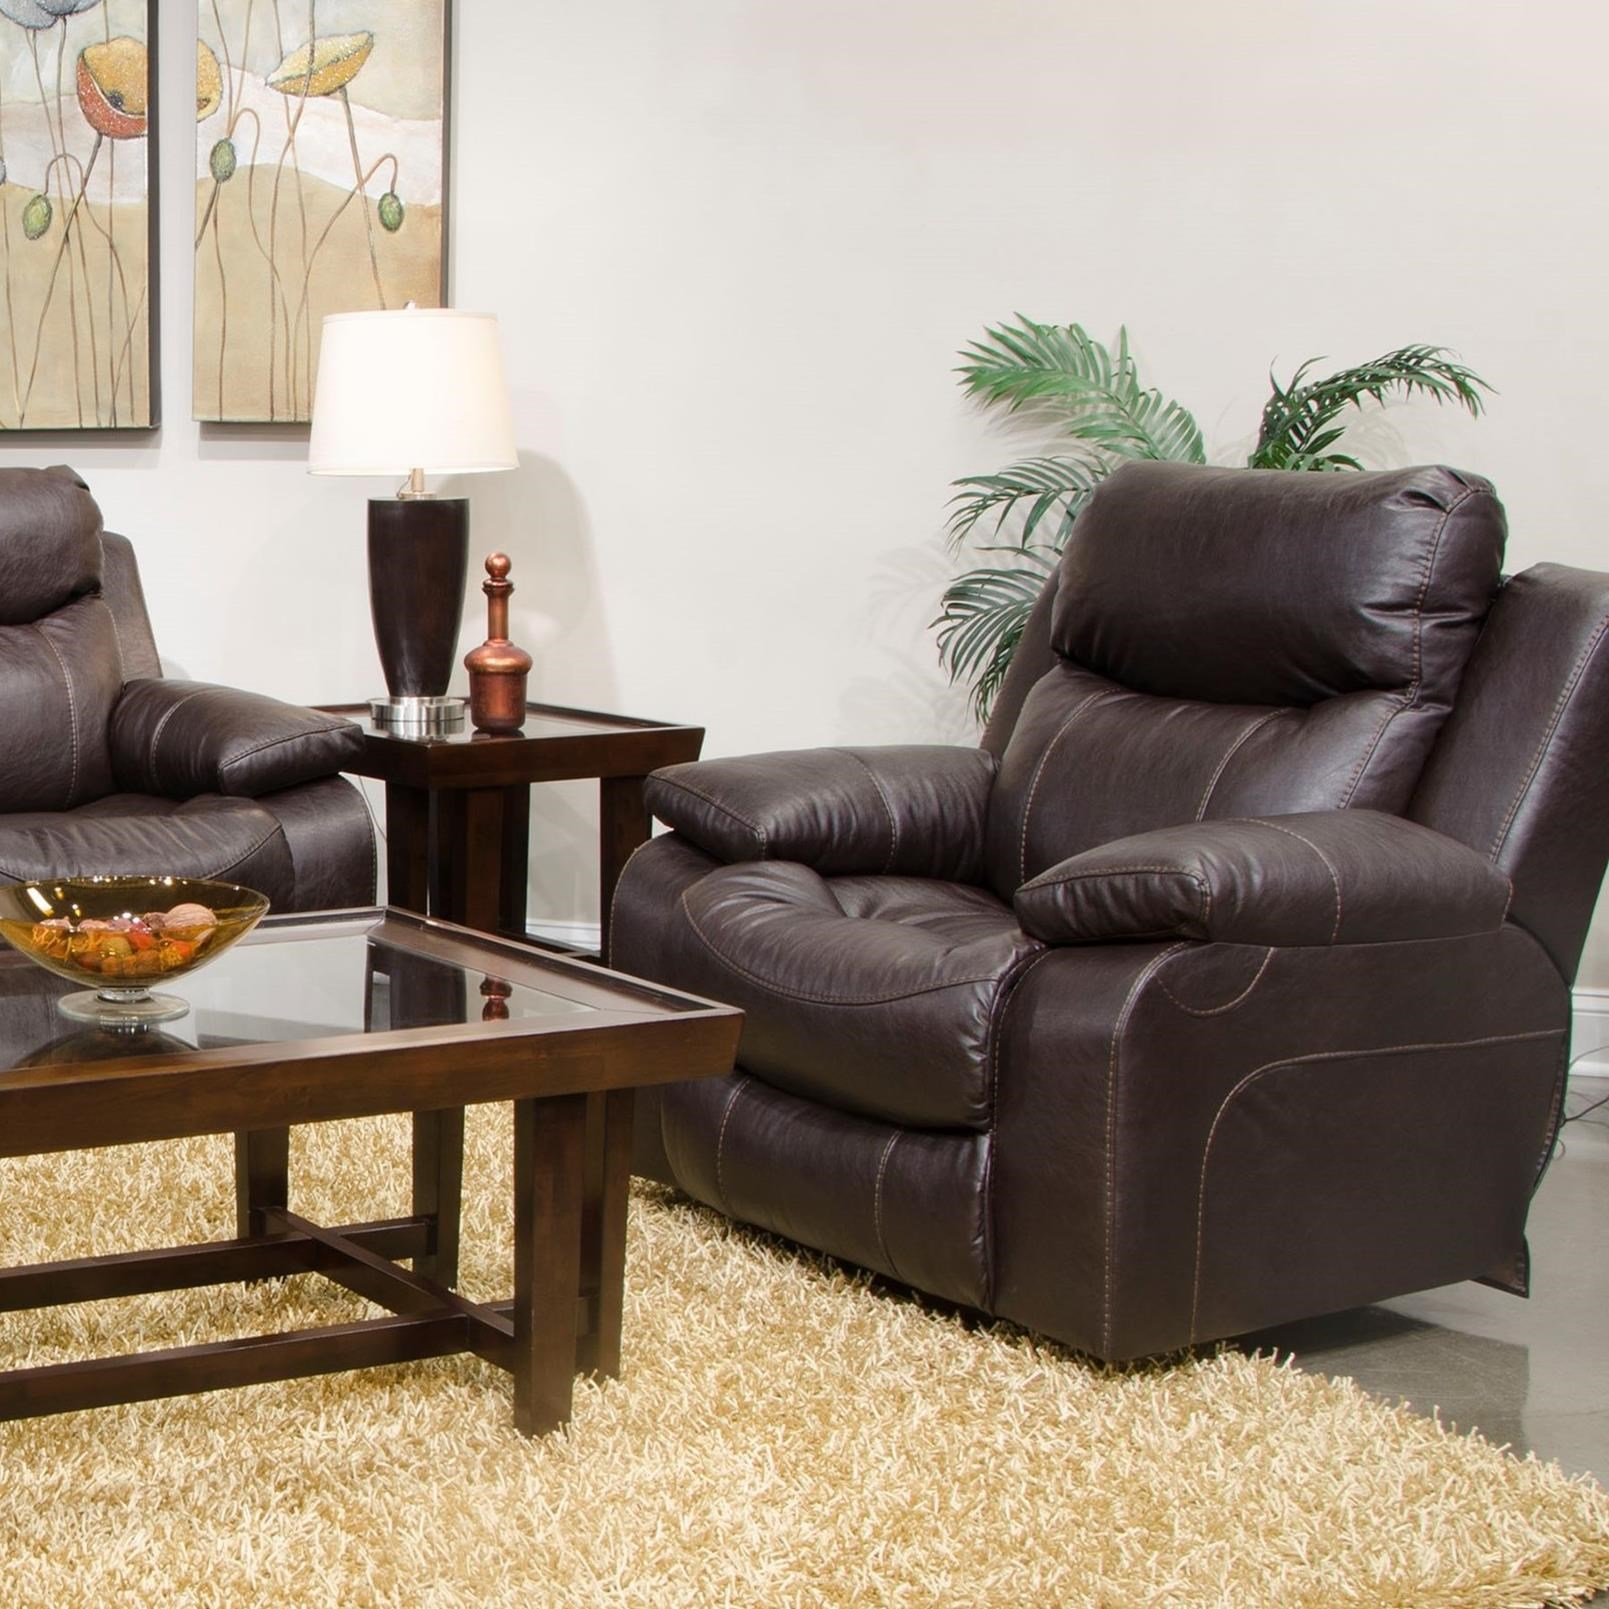 Catnapper Connor Power Lay Flat Recliner - Item Number: 64000-7-1123-29-1223-29